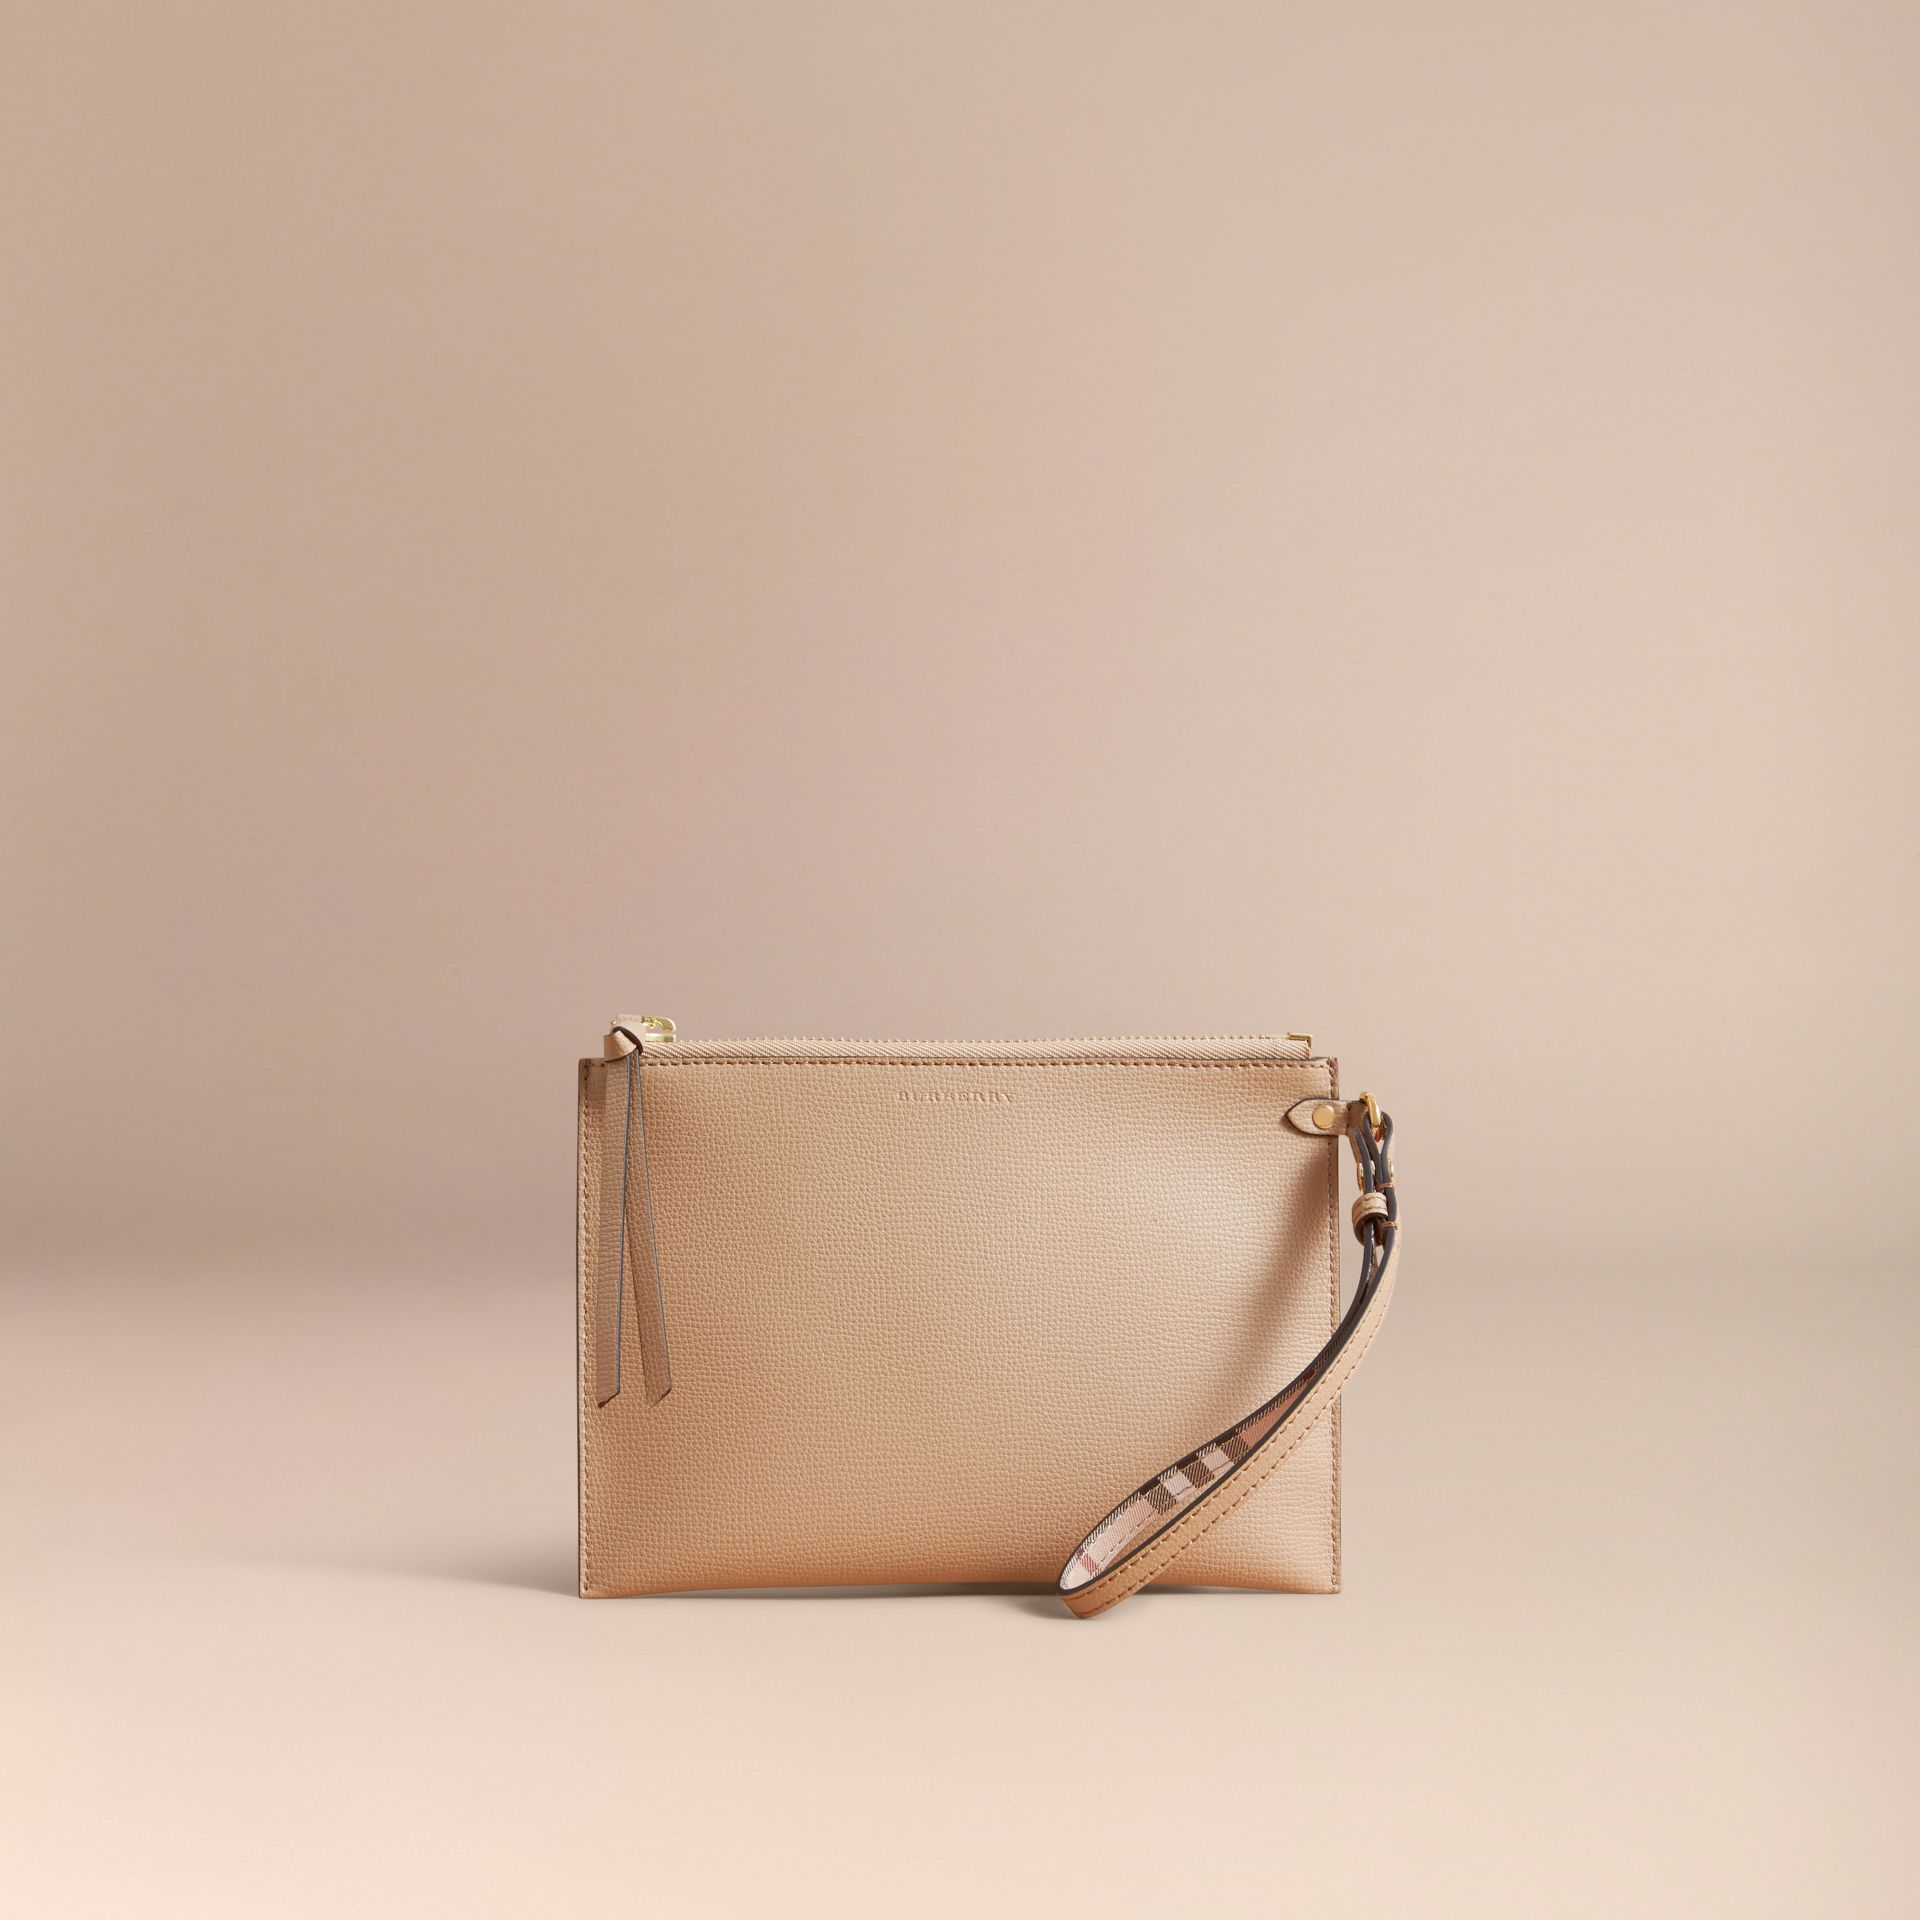 Haymarket Check and Leather Pouch in Mid Camel - Women | Burberry Australia - gallery image 6